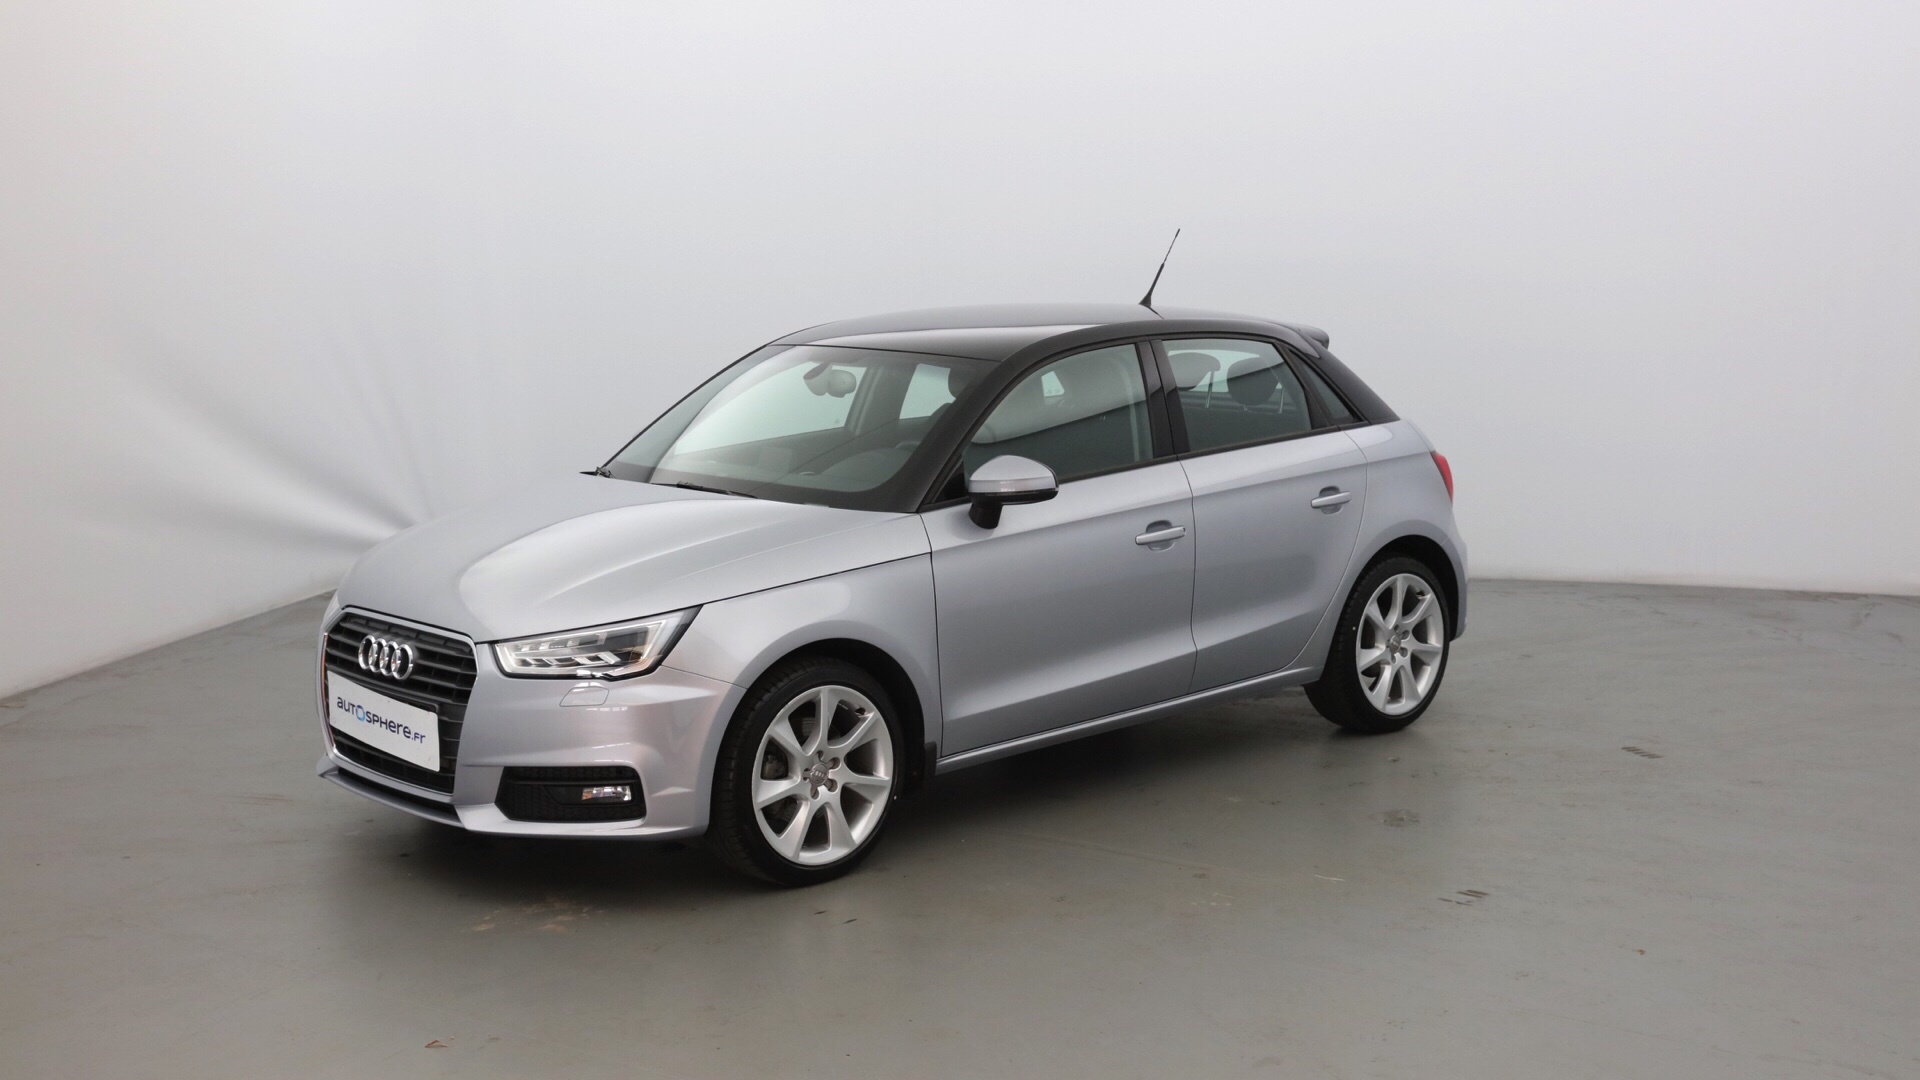 AUDI A1 SPORTBACK 1.4 TFSI 125CH AMBITION - Photo 1